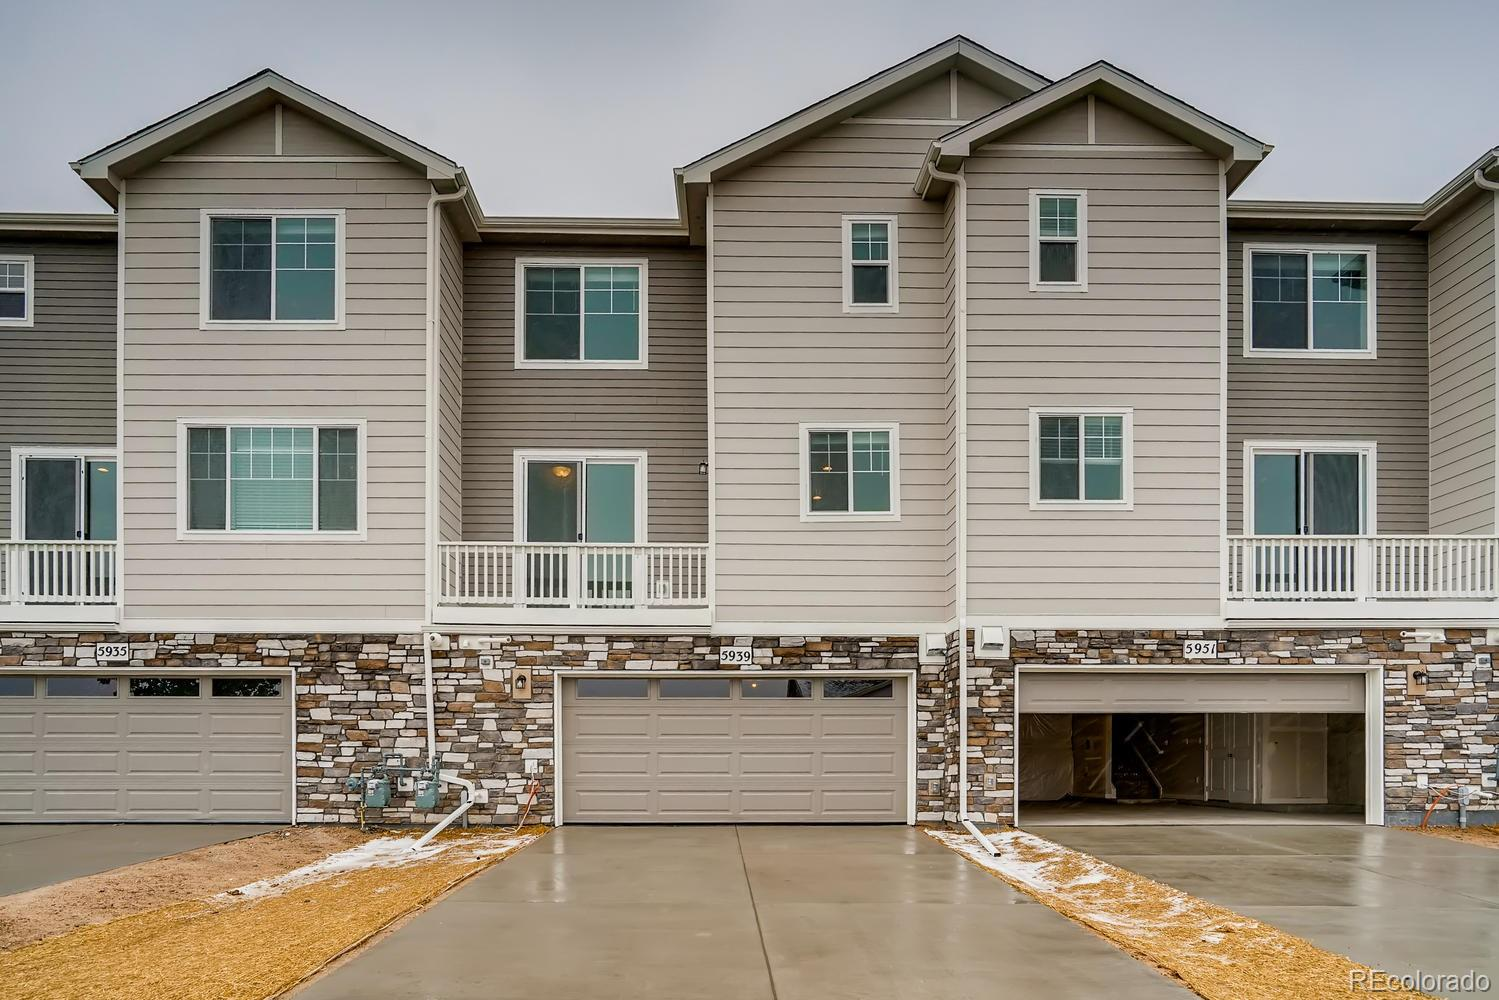 """Luxury Townhome in the heart of Castlerock with an April/May 2021 completion! Photos are from similar home.  The beautiful Berkshire is a 2 bed, 2.5 bath, with oversized attached 2 car garage. Chef's style kitchen includes stainless steel appliances, granite countertops, upgraded cabinets, gas range with hood above, dishwasher, and built-in microwave.  Open floorplan with spacious living area including fireplace, kitchen island, dining space, and is perfect for entertaining.  Wood laminate flooring has been extended throughout entire main level.  Both bedrooms have en-suite bathrooms providing privacy, and making it a great roommate layout or guest suite.  Upstairs laundry conveniently located near both bedrooms.  Includes energy-efficient furnace, A/C, tankless water heater, and 2"""" white blinds. Right outside your back door, you can enjoy miles of walking trails through the beautiful scenery of the nature filled canyons. Don't miss out on living at The Enclave, just moments away from major highways, shopping, dining, award winning Douglas County Schools, and multiple outdoor activities!"""